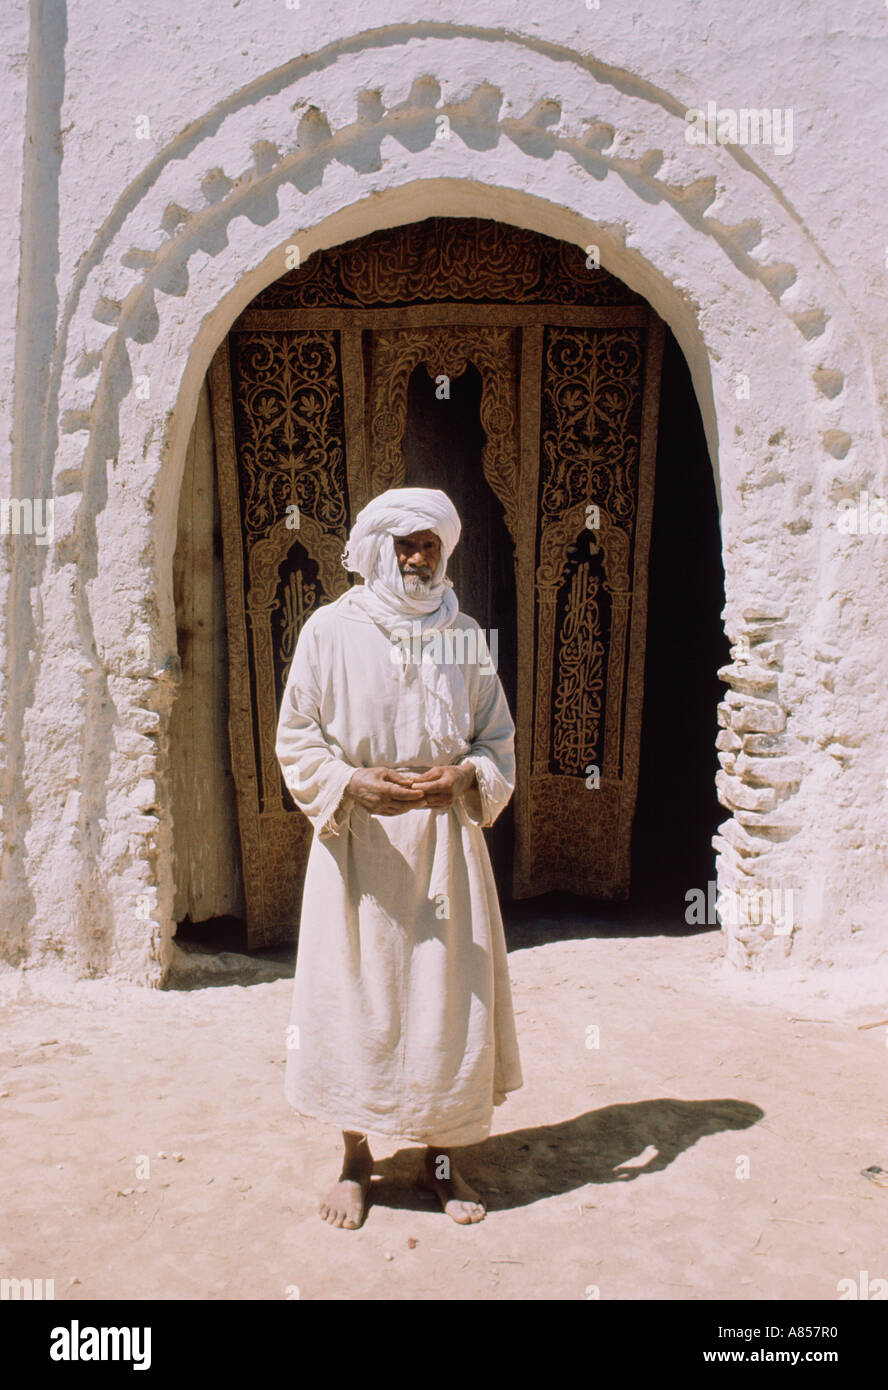 Morocco. Erfoud. Local man standing in front of Old city gate. - Stock Image